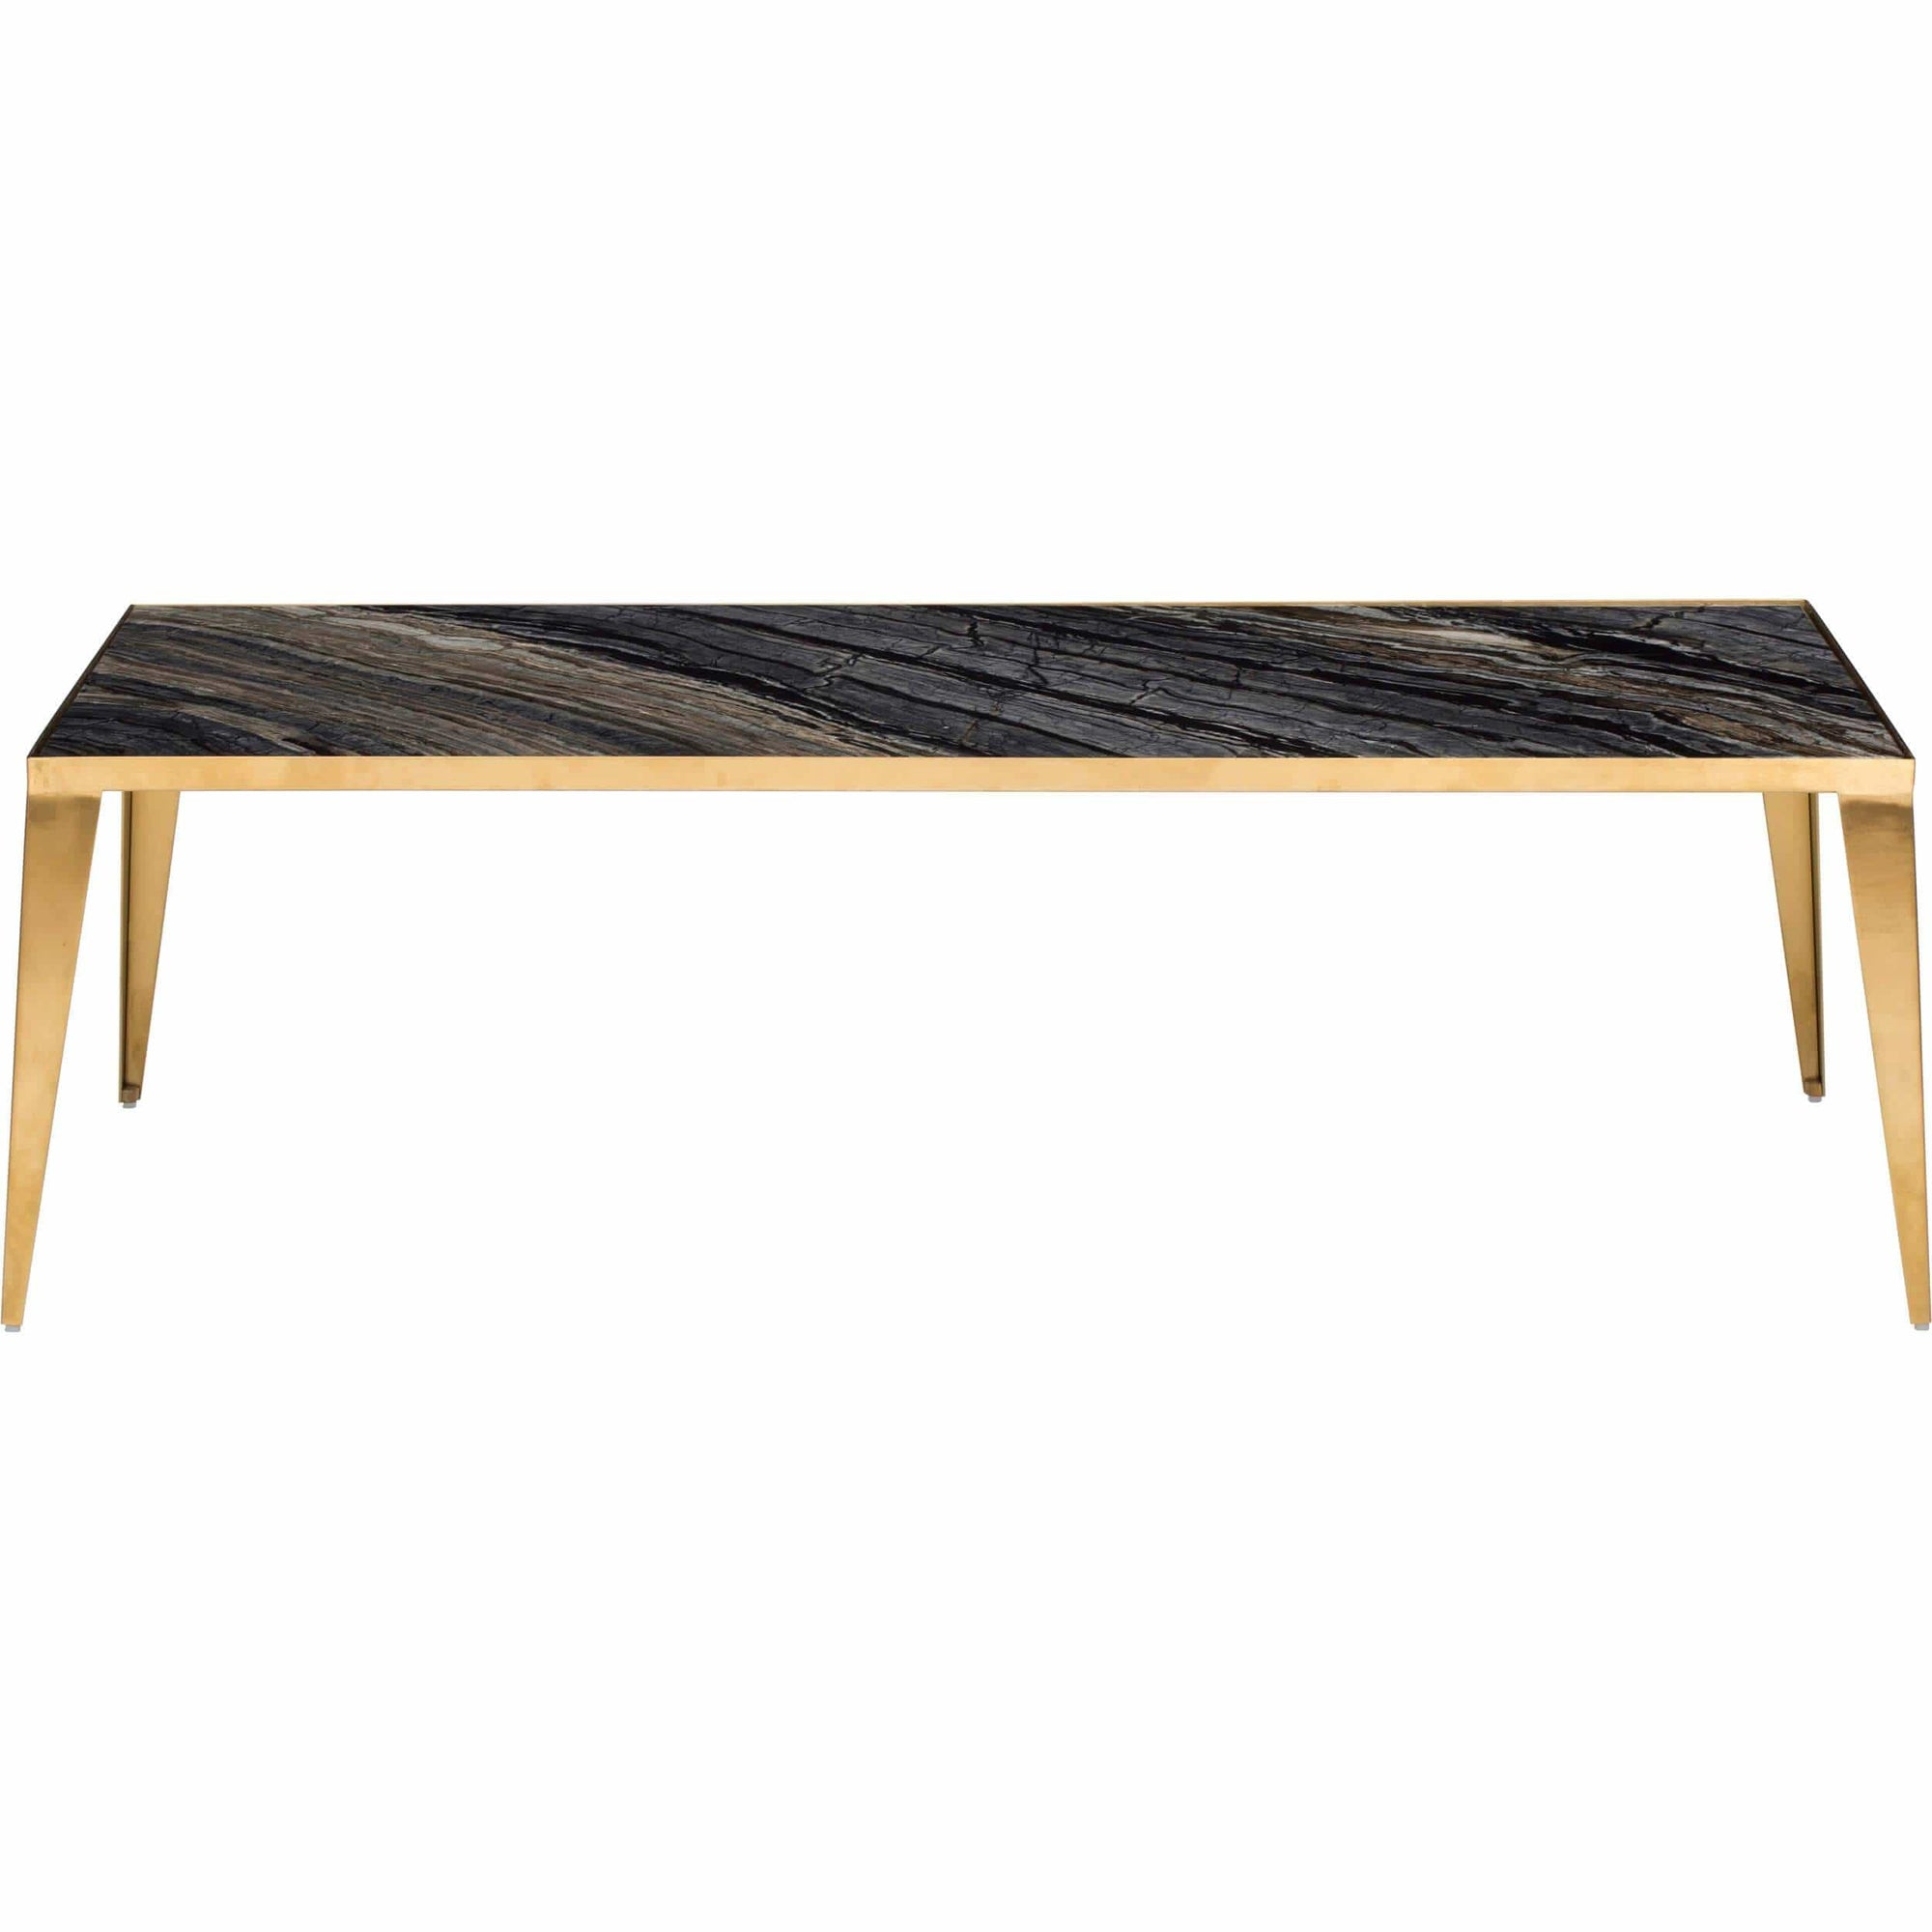 Mink Coffee Table Black Gold Base High Fashion Home